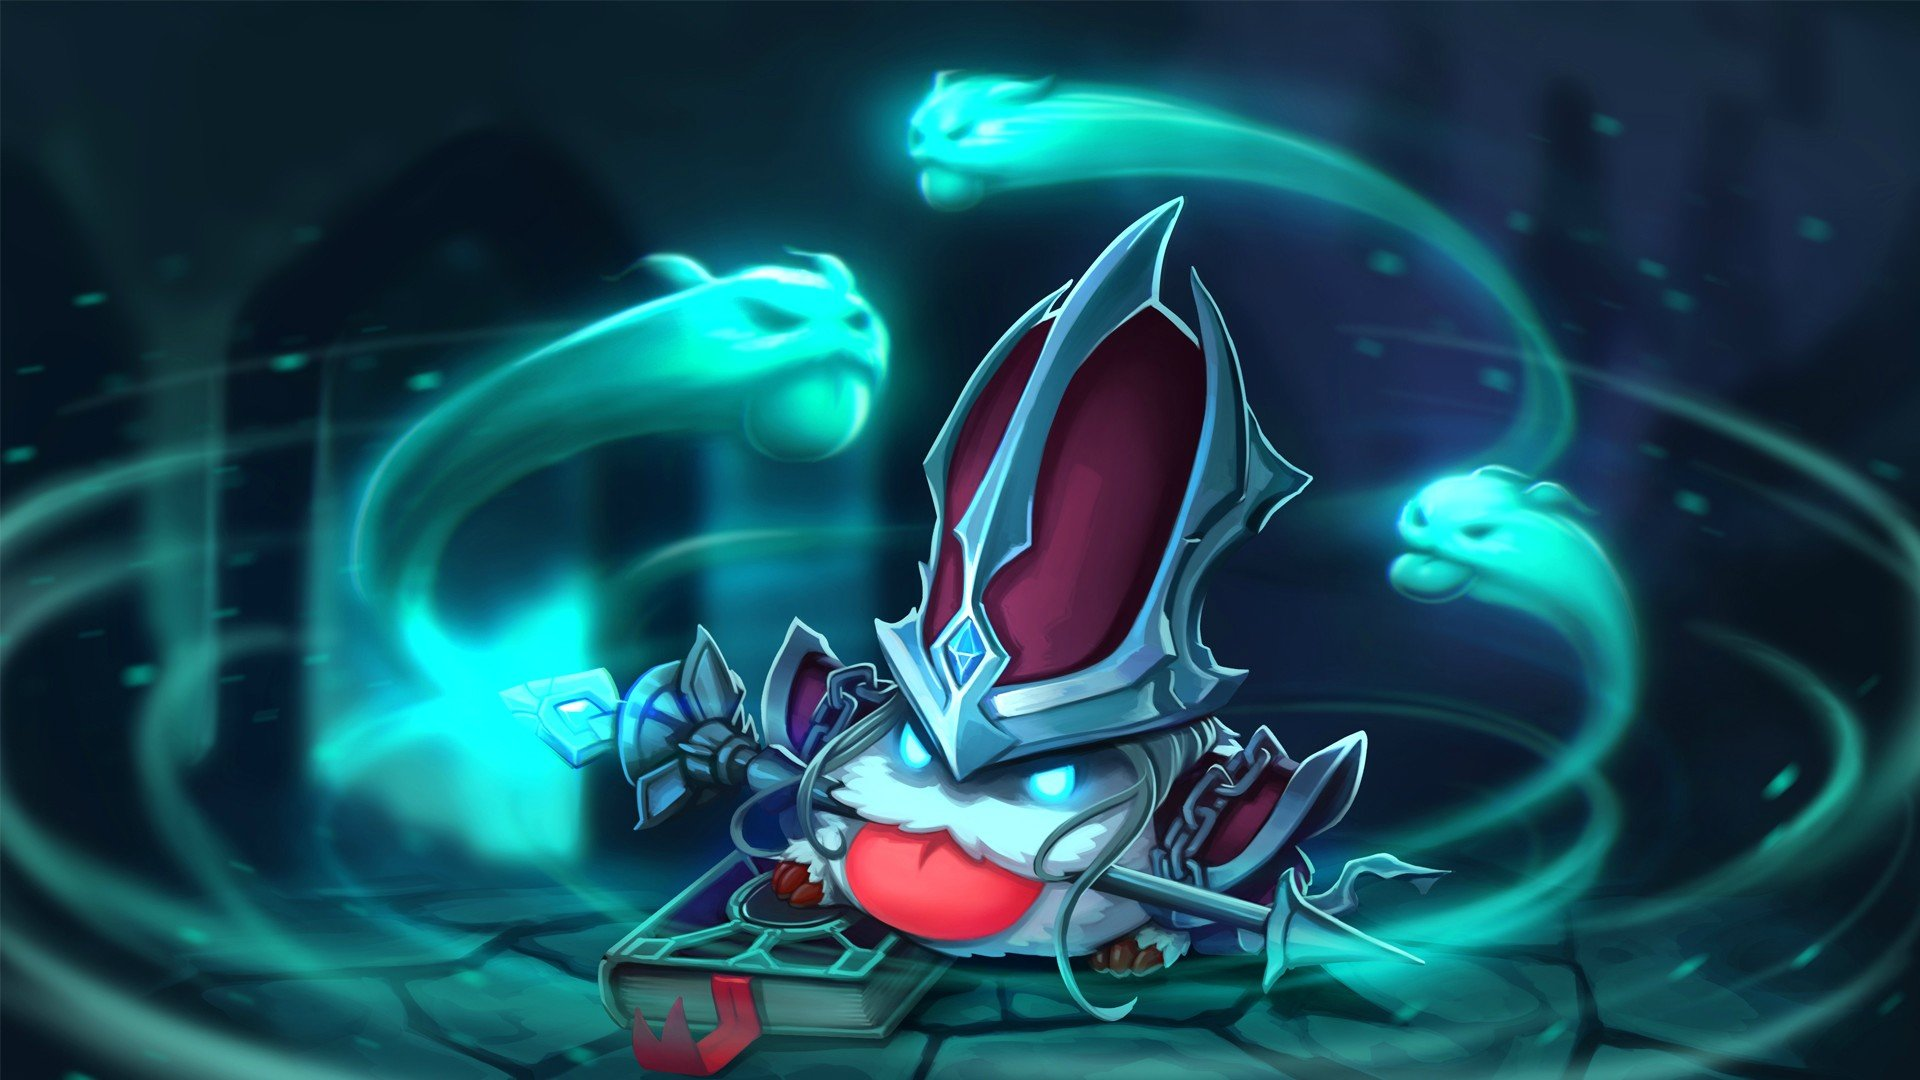 Download 1080p Poro League Of Legends Pc Wallpaper Id 171764 For